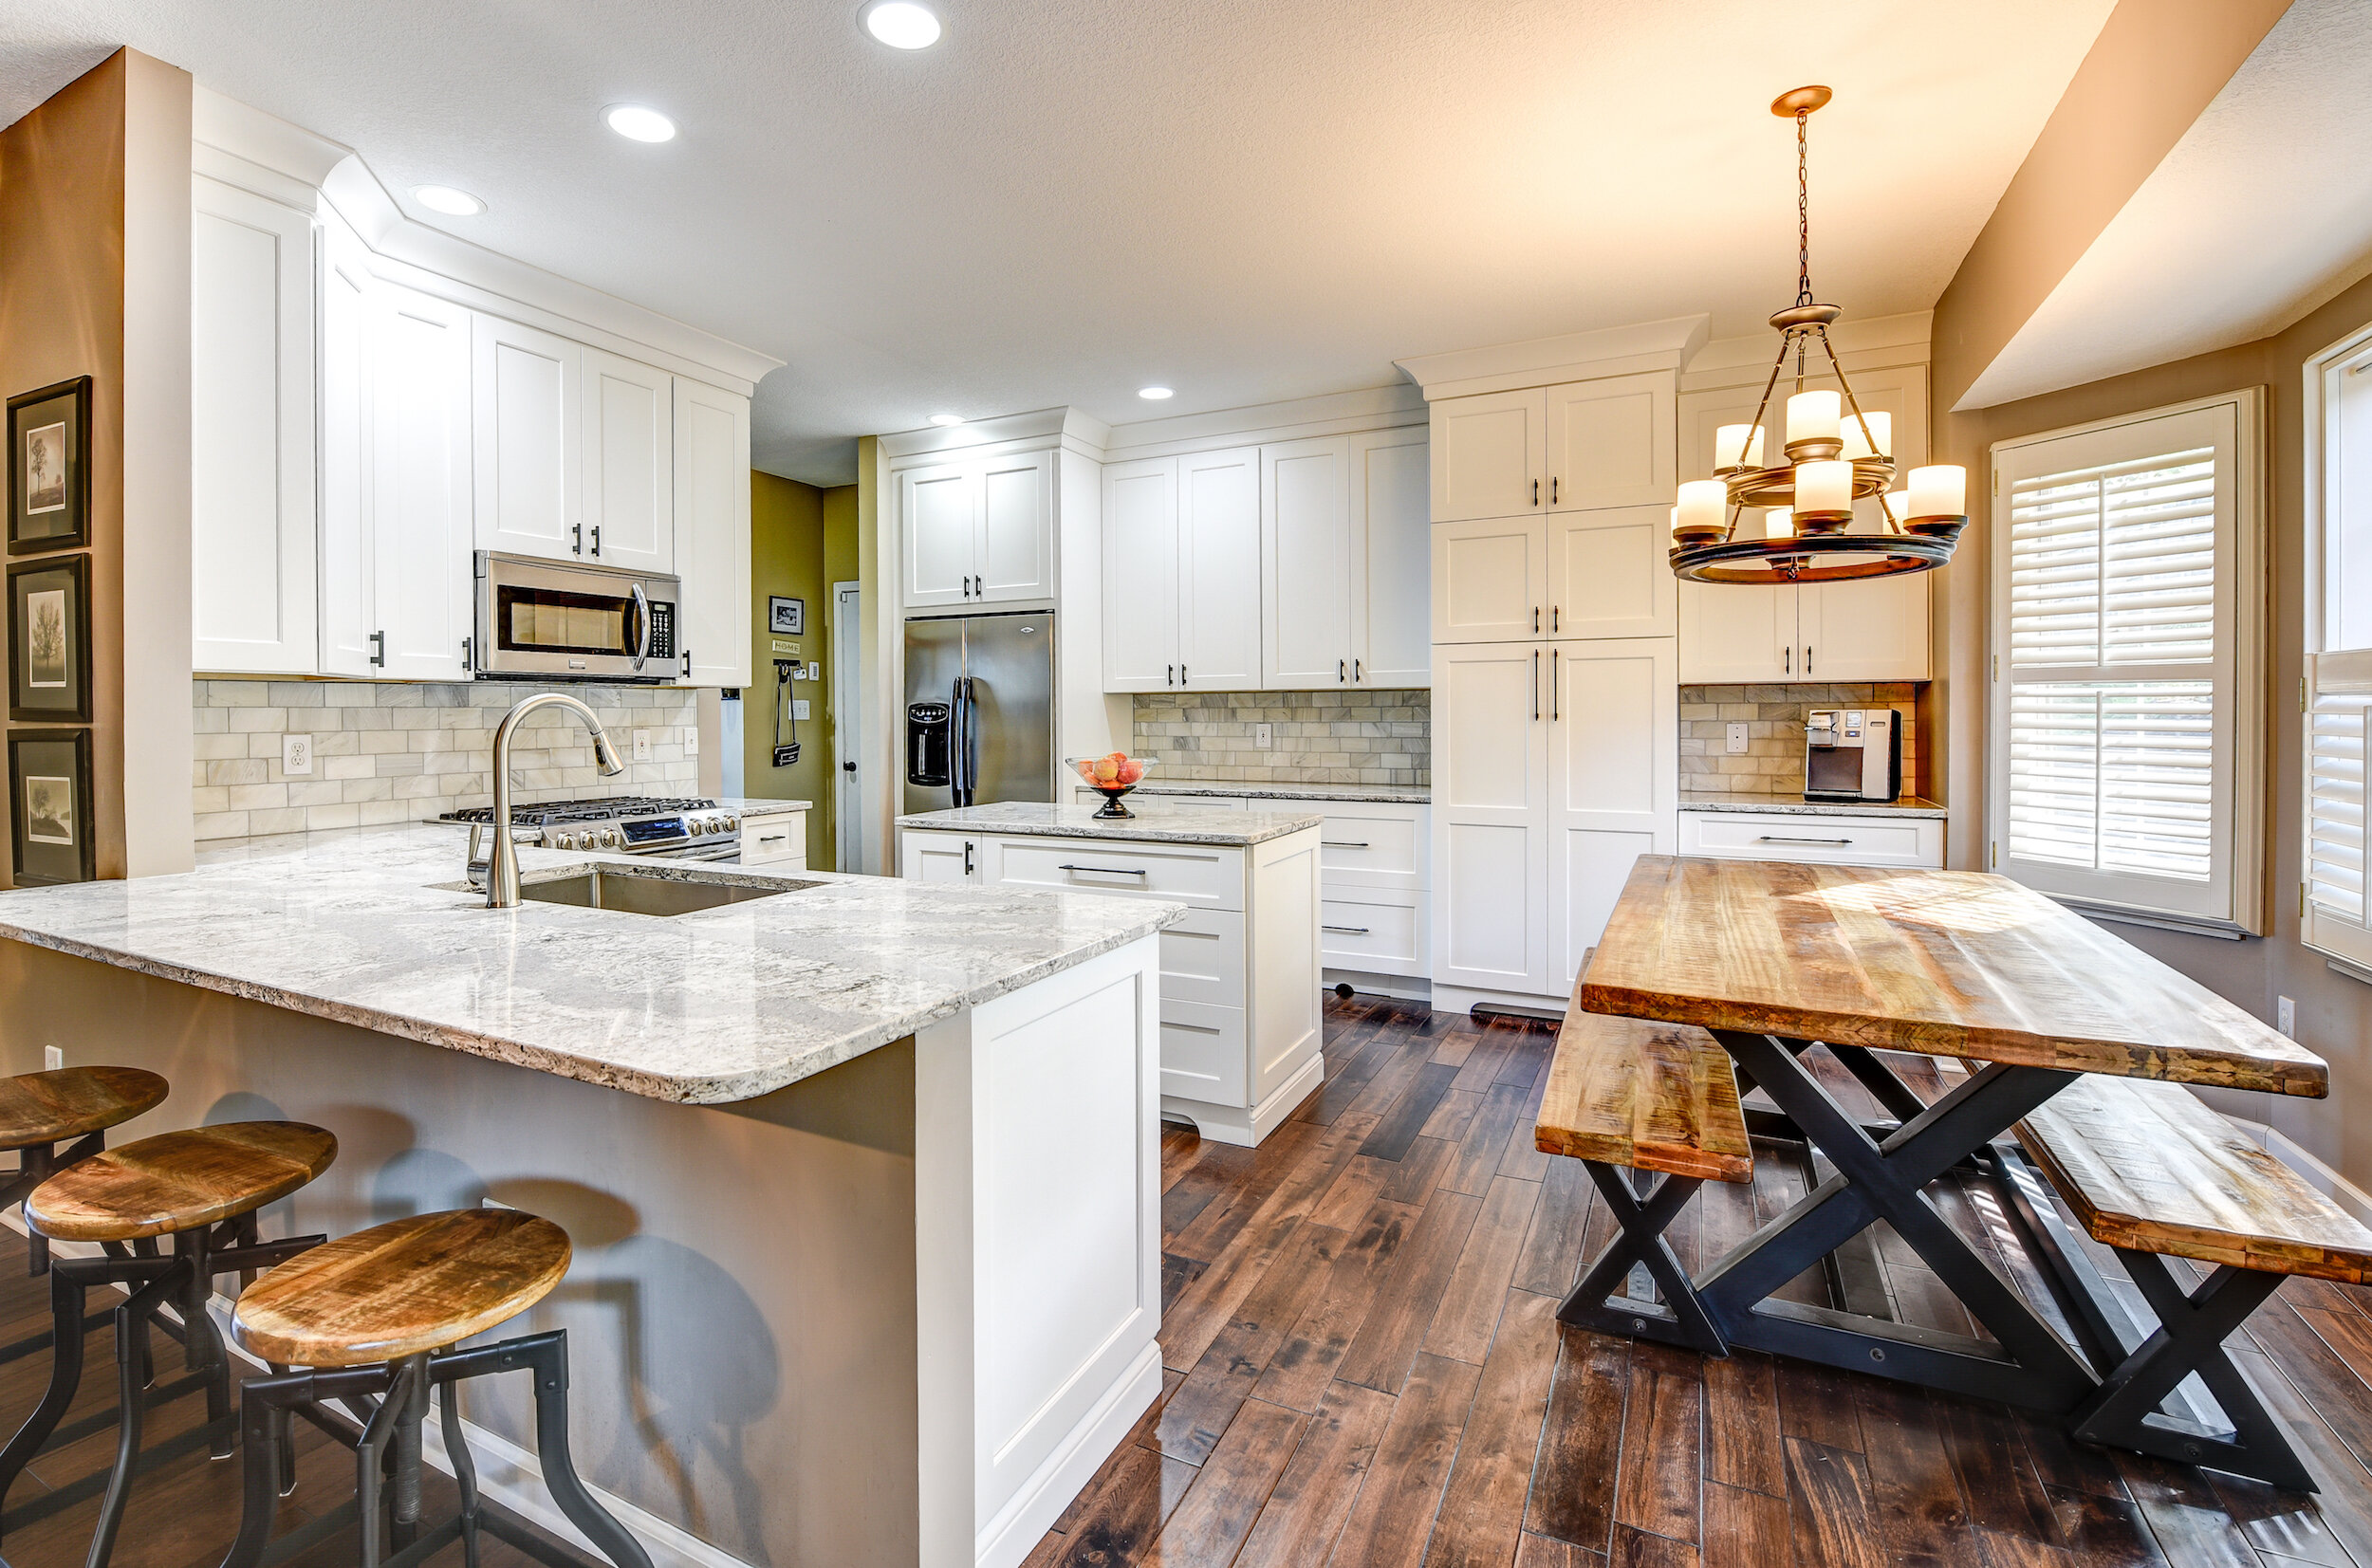 St Gregory S Court Sticks 2 Stones Design Custom Cabinetry In Knoxville Tennessee Custom Kitchen Cabinets Knoxville Cabinet Companies In Knoxville Tn Cabinet Installation Knoxville Tn Kitchen